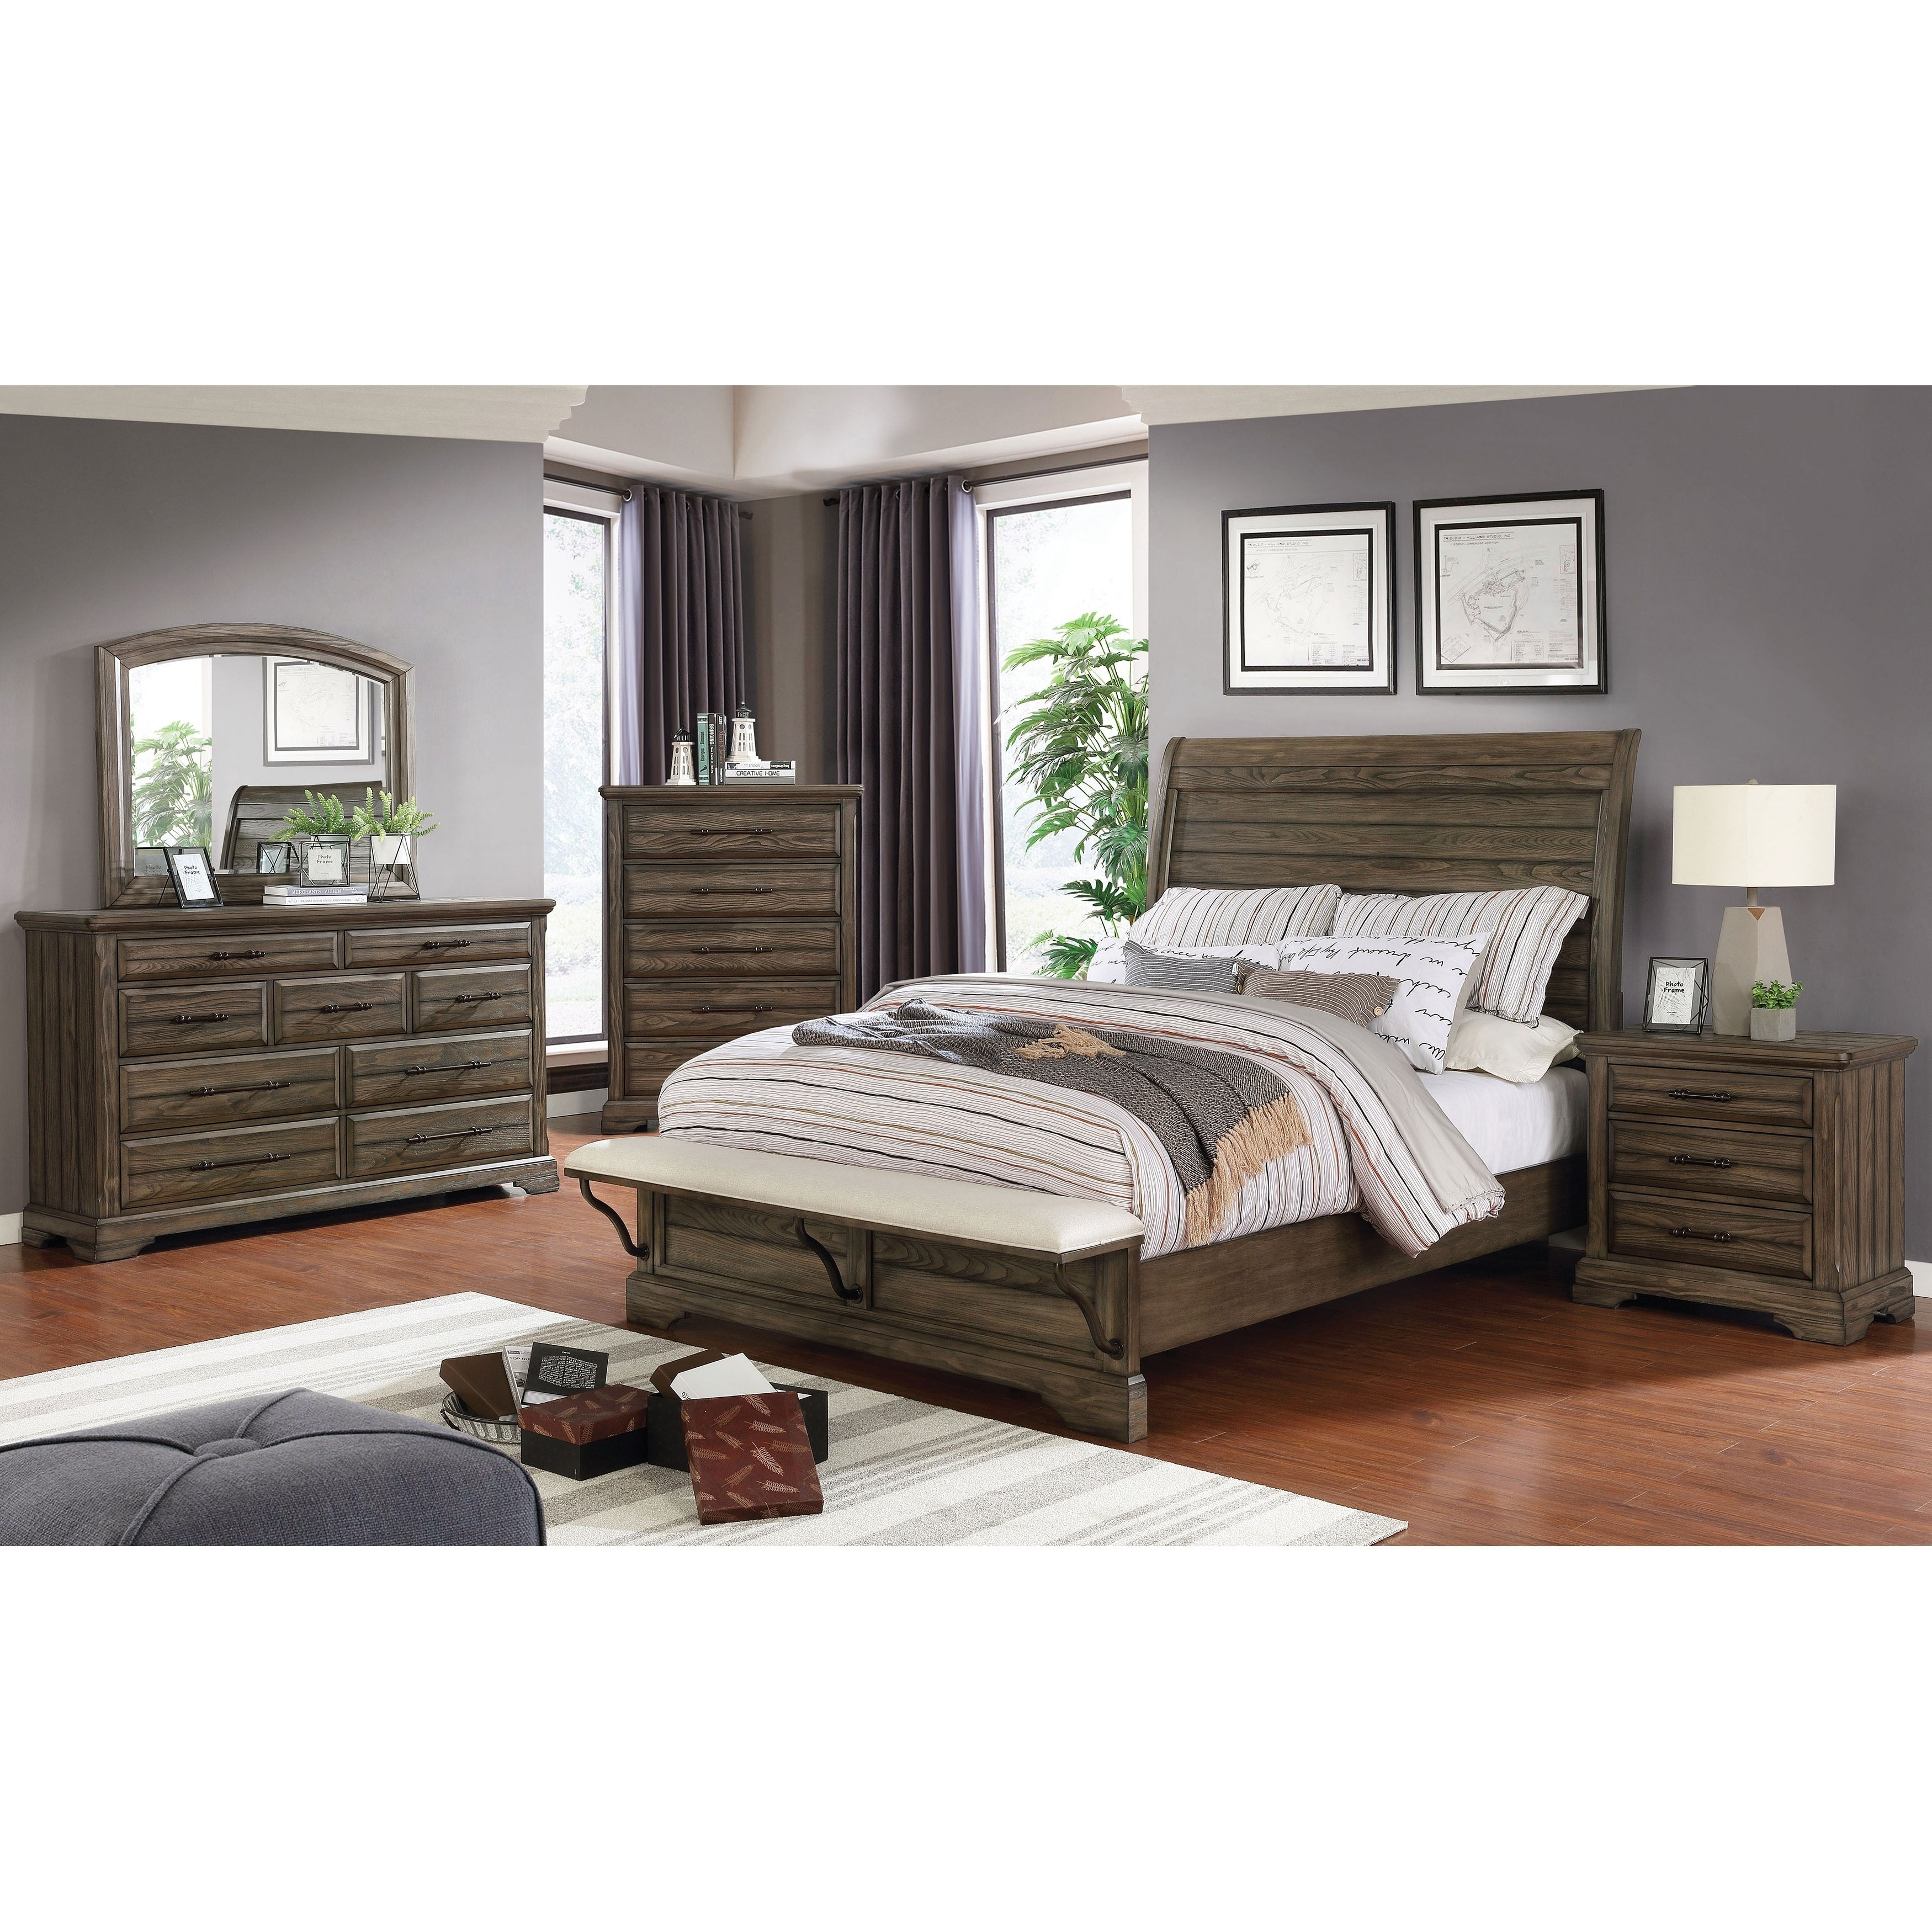 Furniture Of America Kete 3 Piece Bed